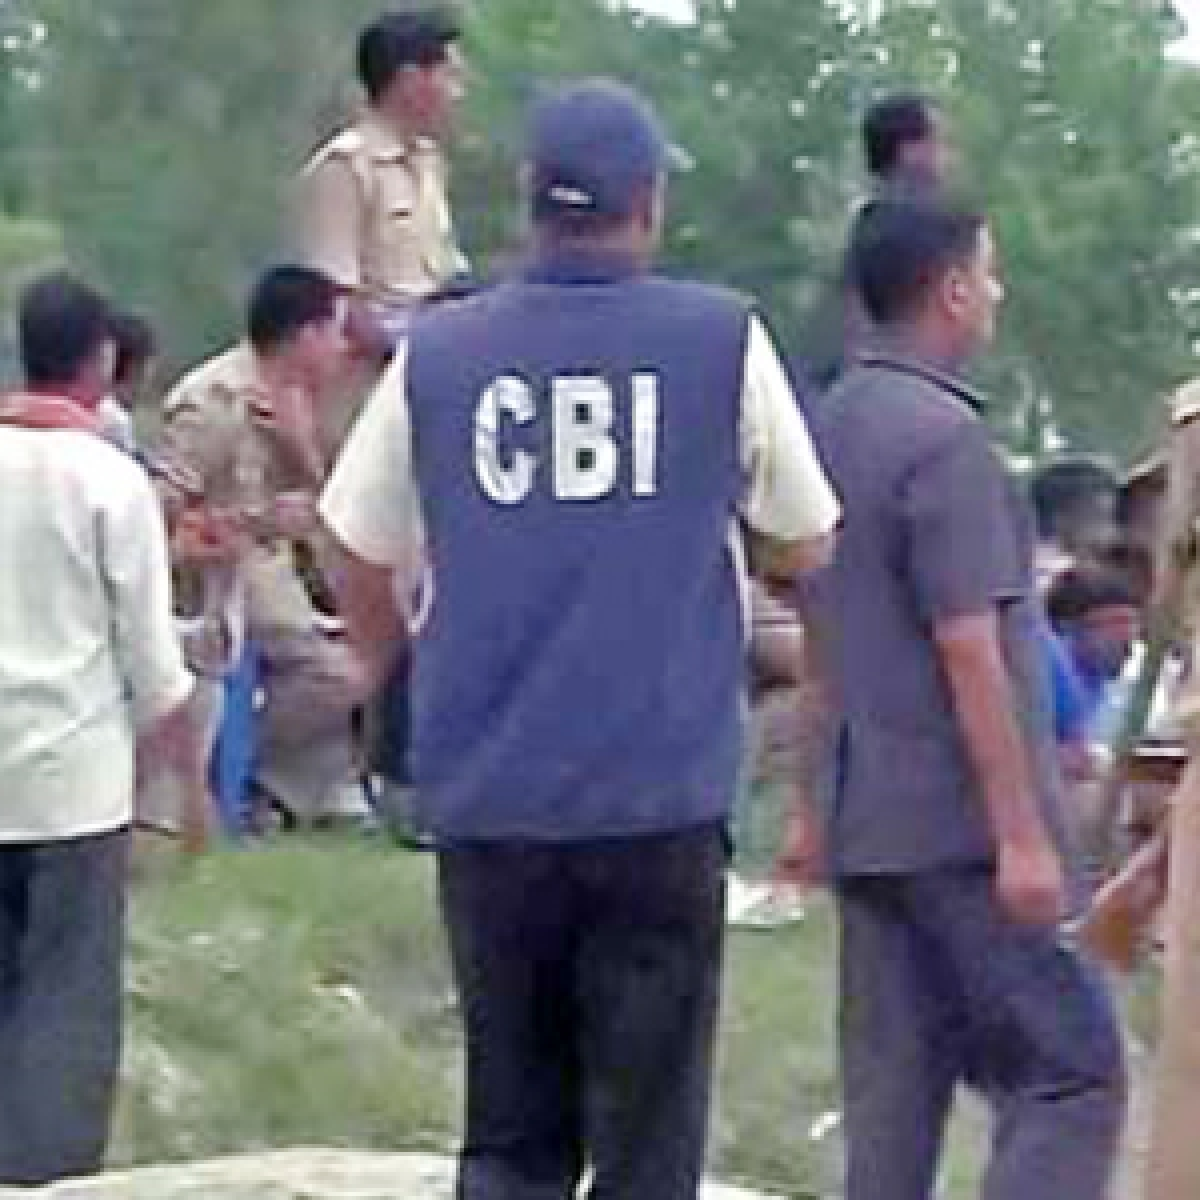 CBI crackdown on banking frauds; 17 FIRs involving Rs 1,139 cr funds